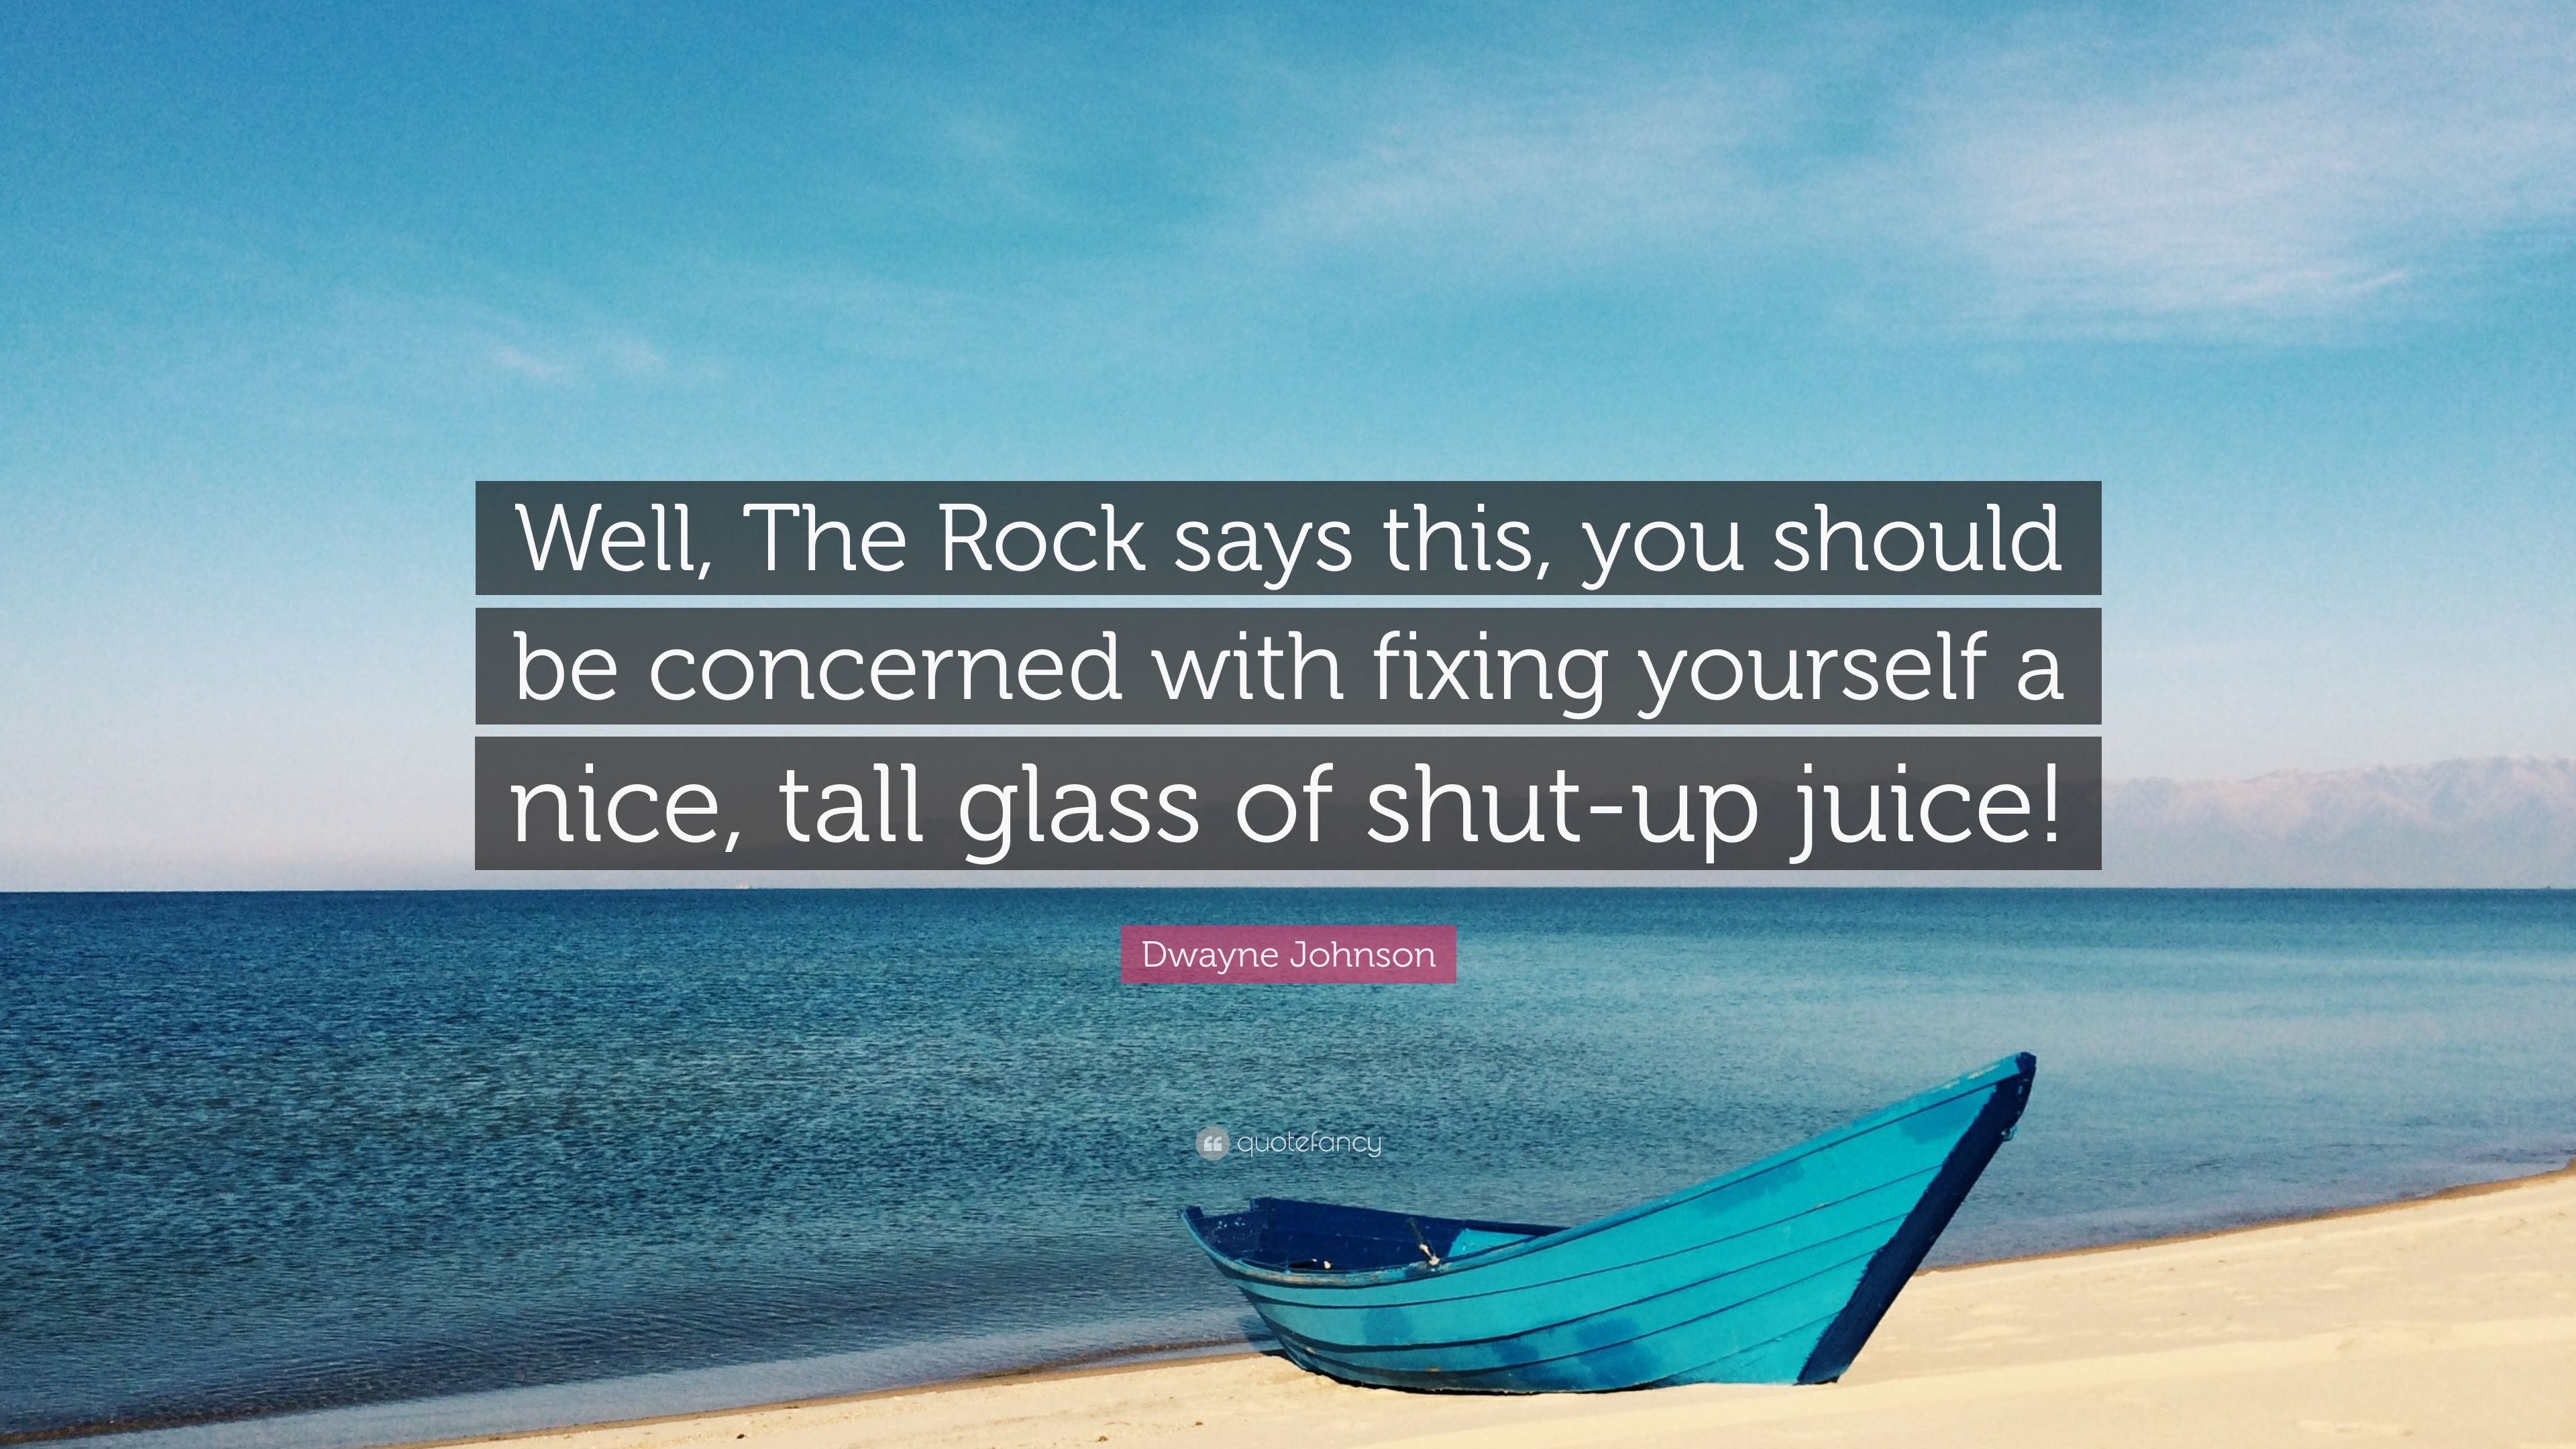 4897316-Dwayne-Johnson-Quote-Well-The-Rock-says-this-you-should-be.jpg